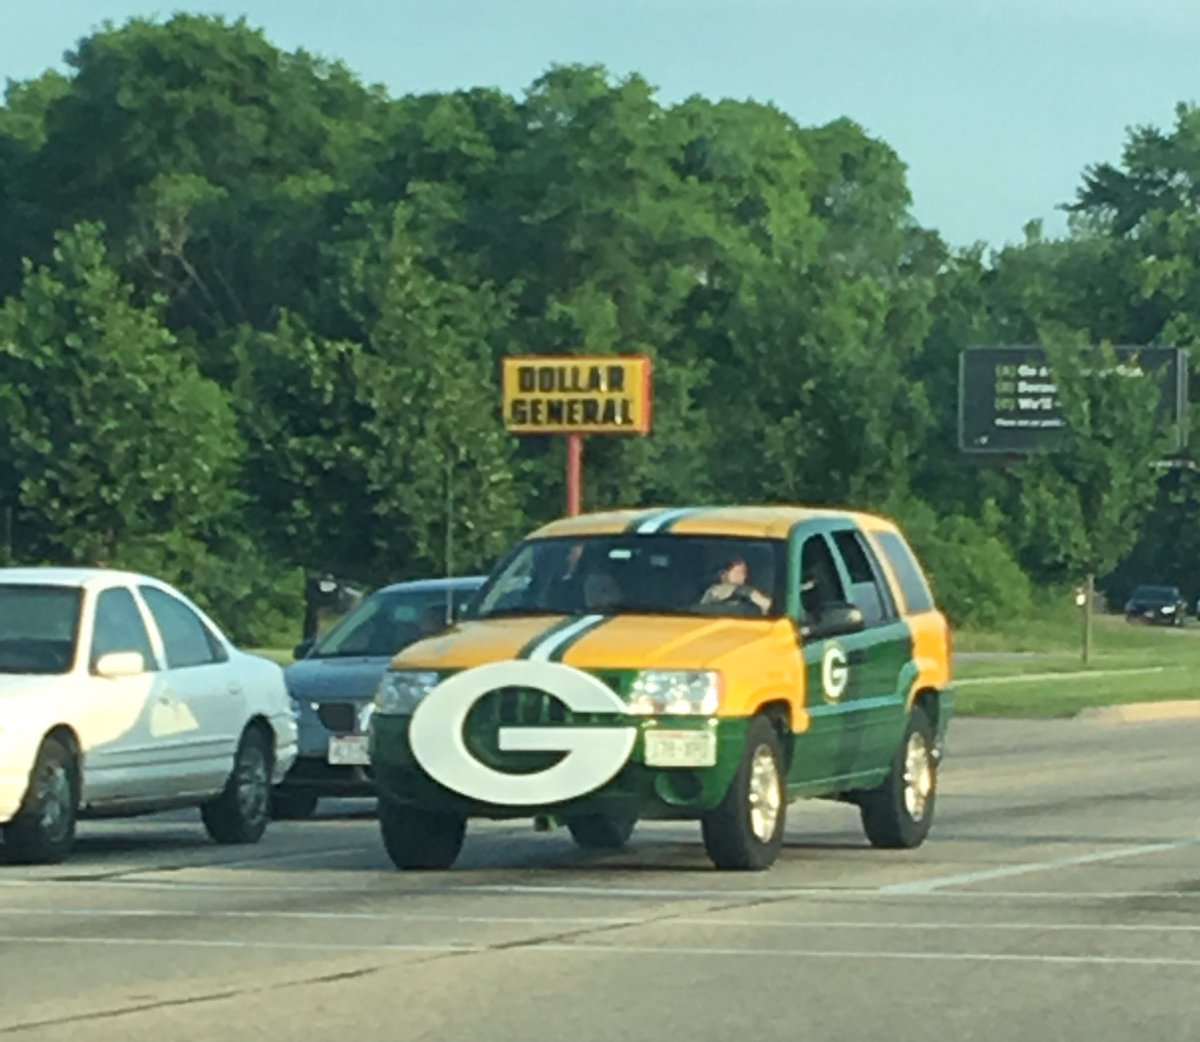 Ah, Wisconsin. Don't ever change.